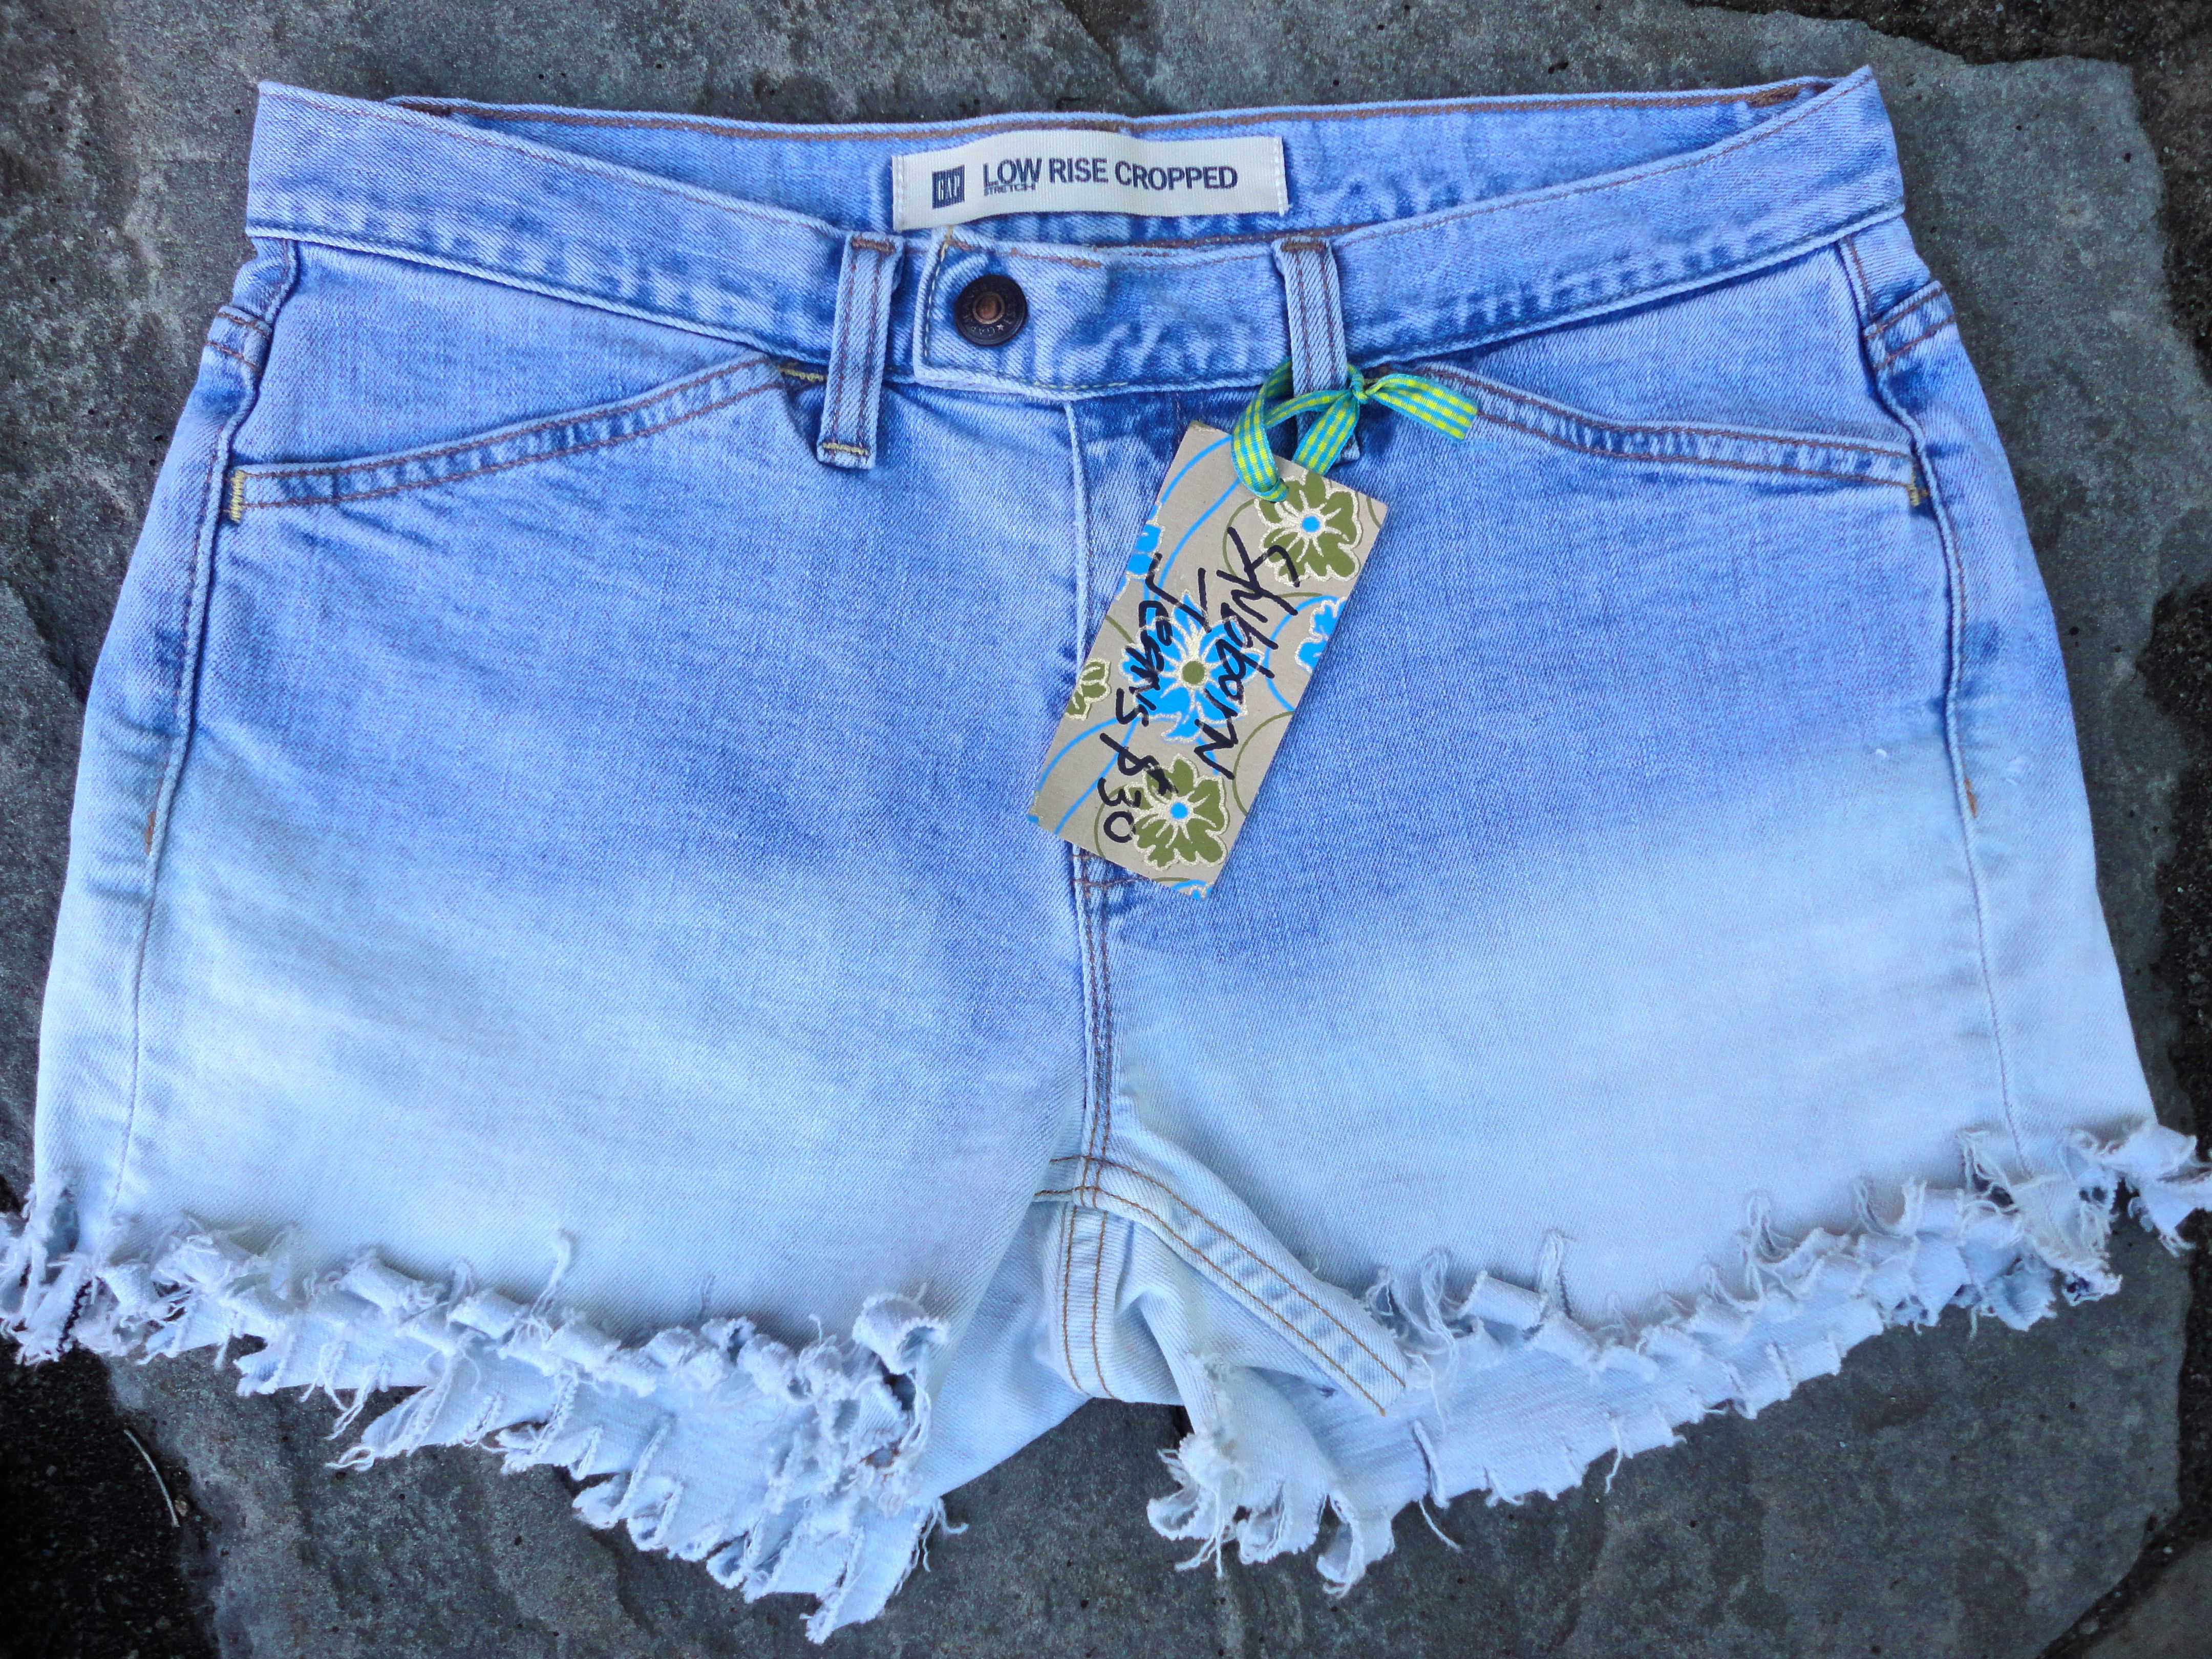 Upcycled jeans shorts by 16-year old designer Sophia Scanlan for Stubborn Jeans. Soft blue with curly bottoms.